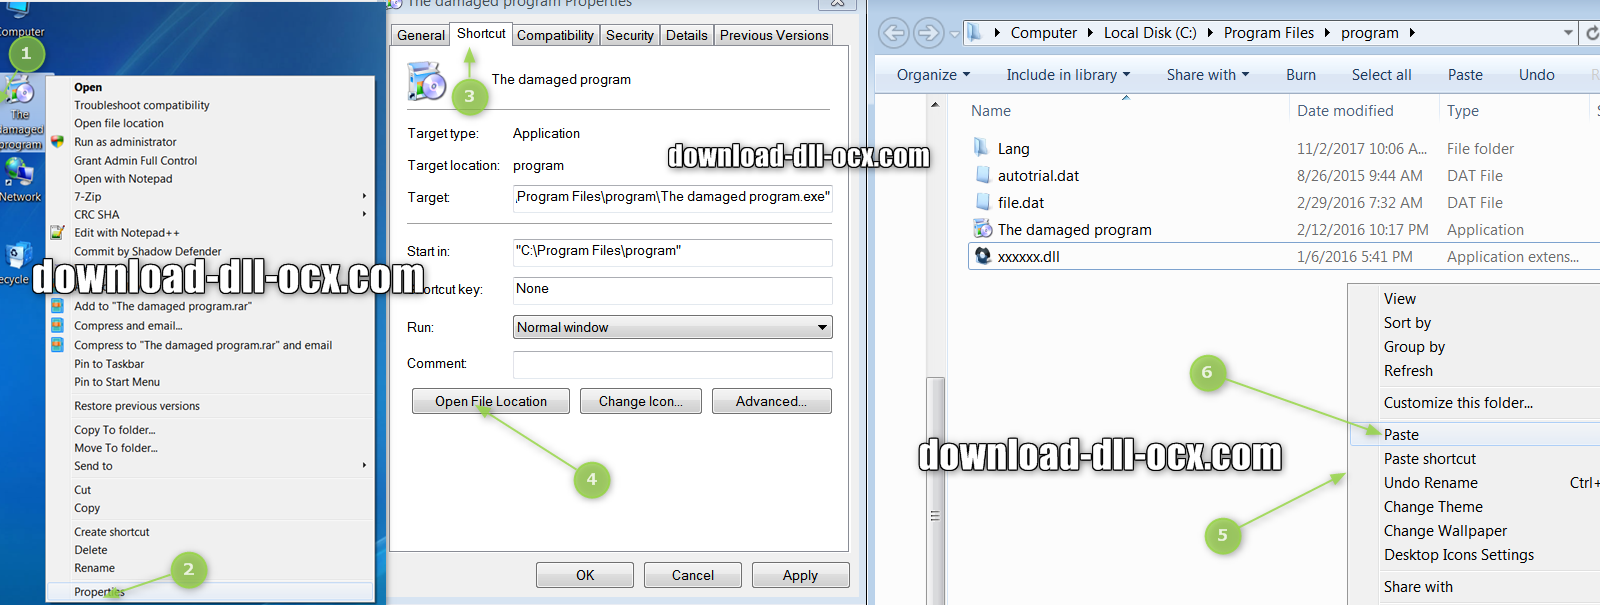 how to install RegCode.dll file? for fix missing